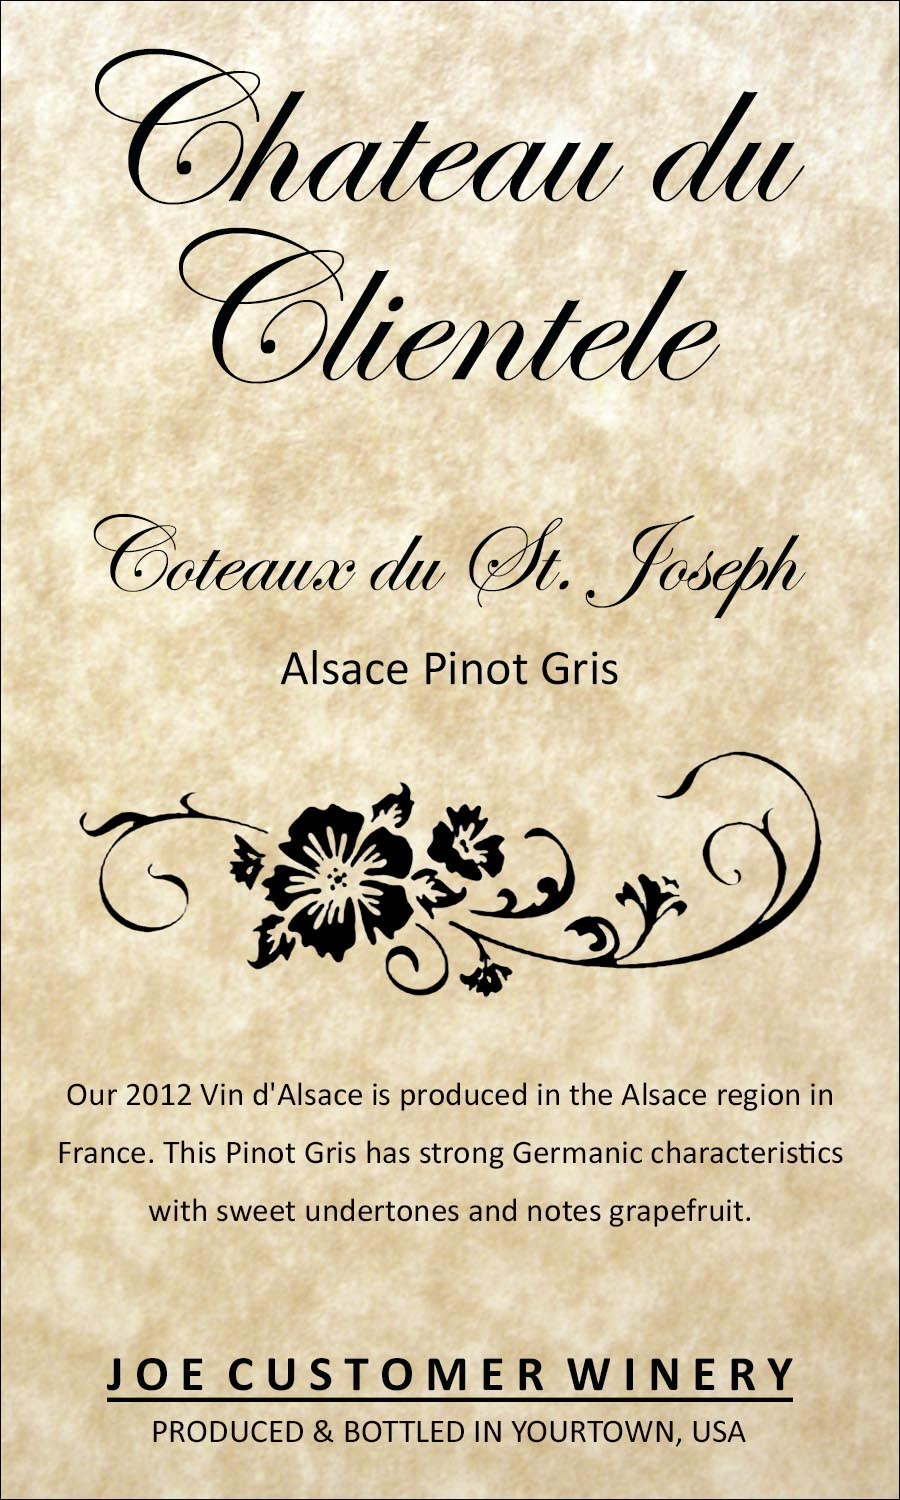 Classic French reusable custom wine label featuring elegant script and design, on parchment paper